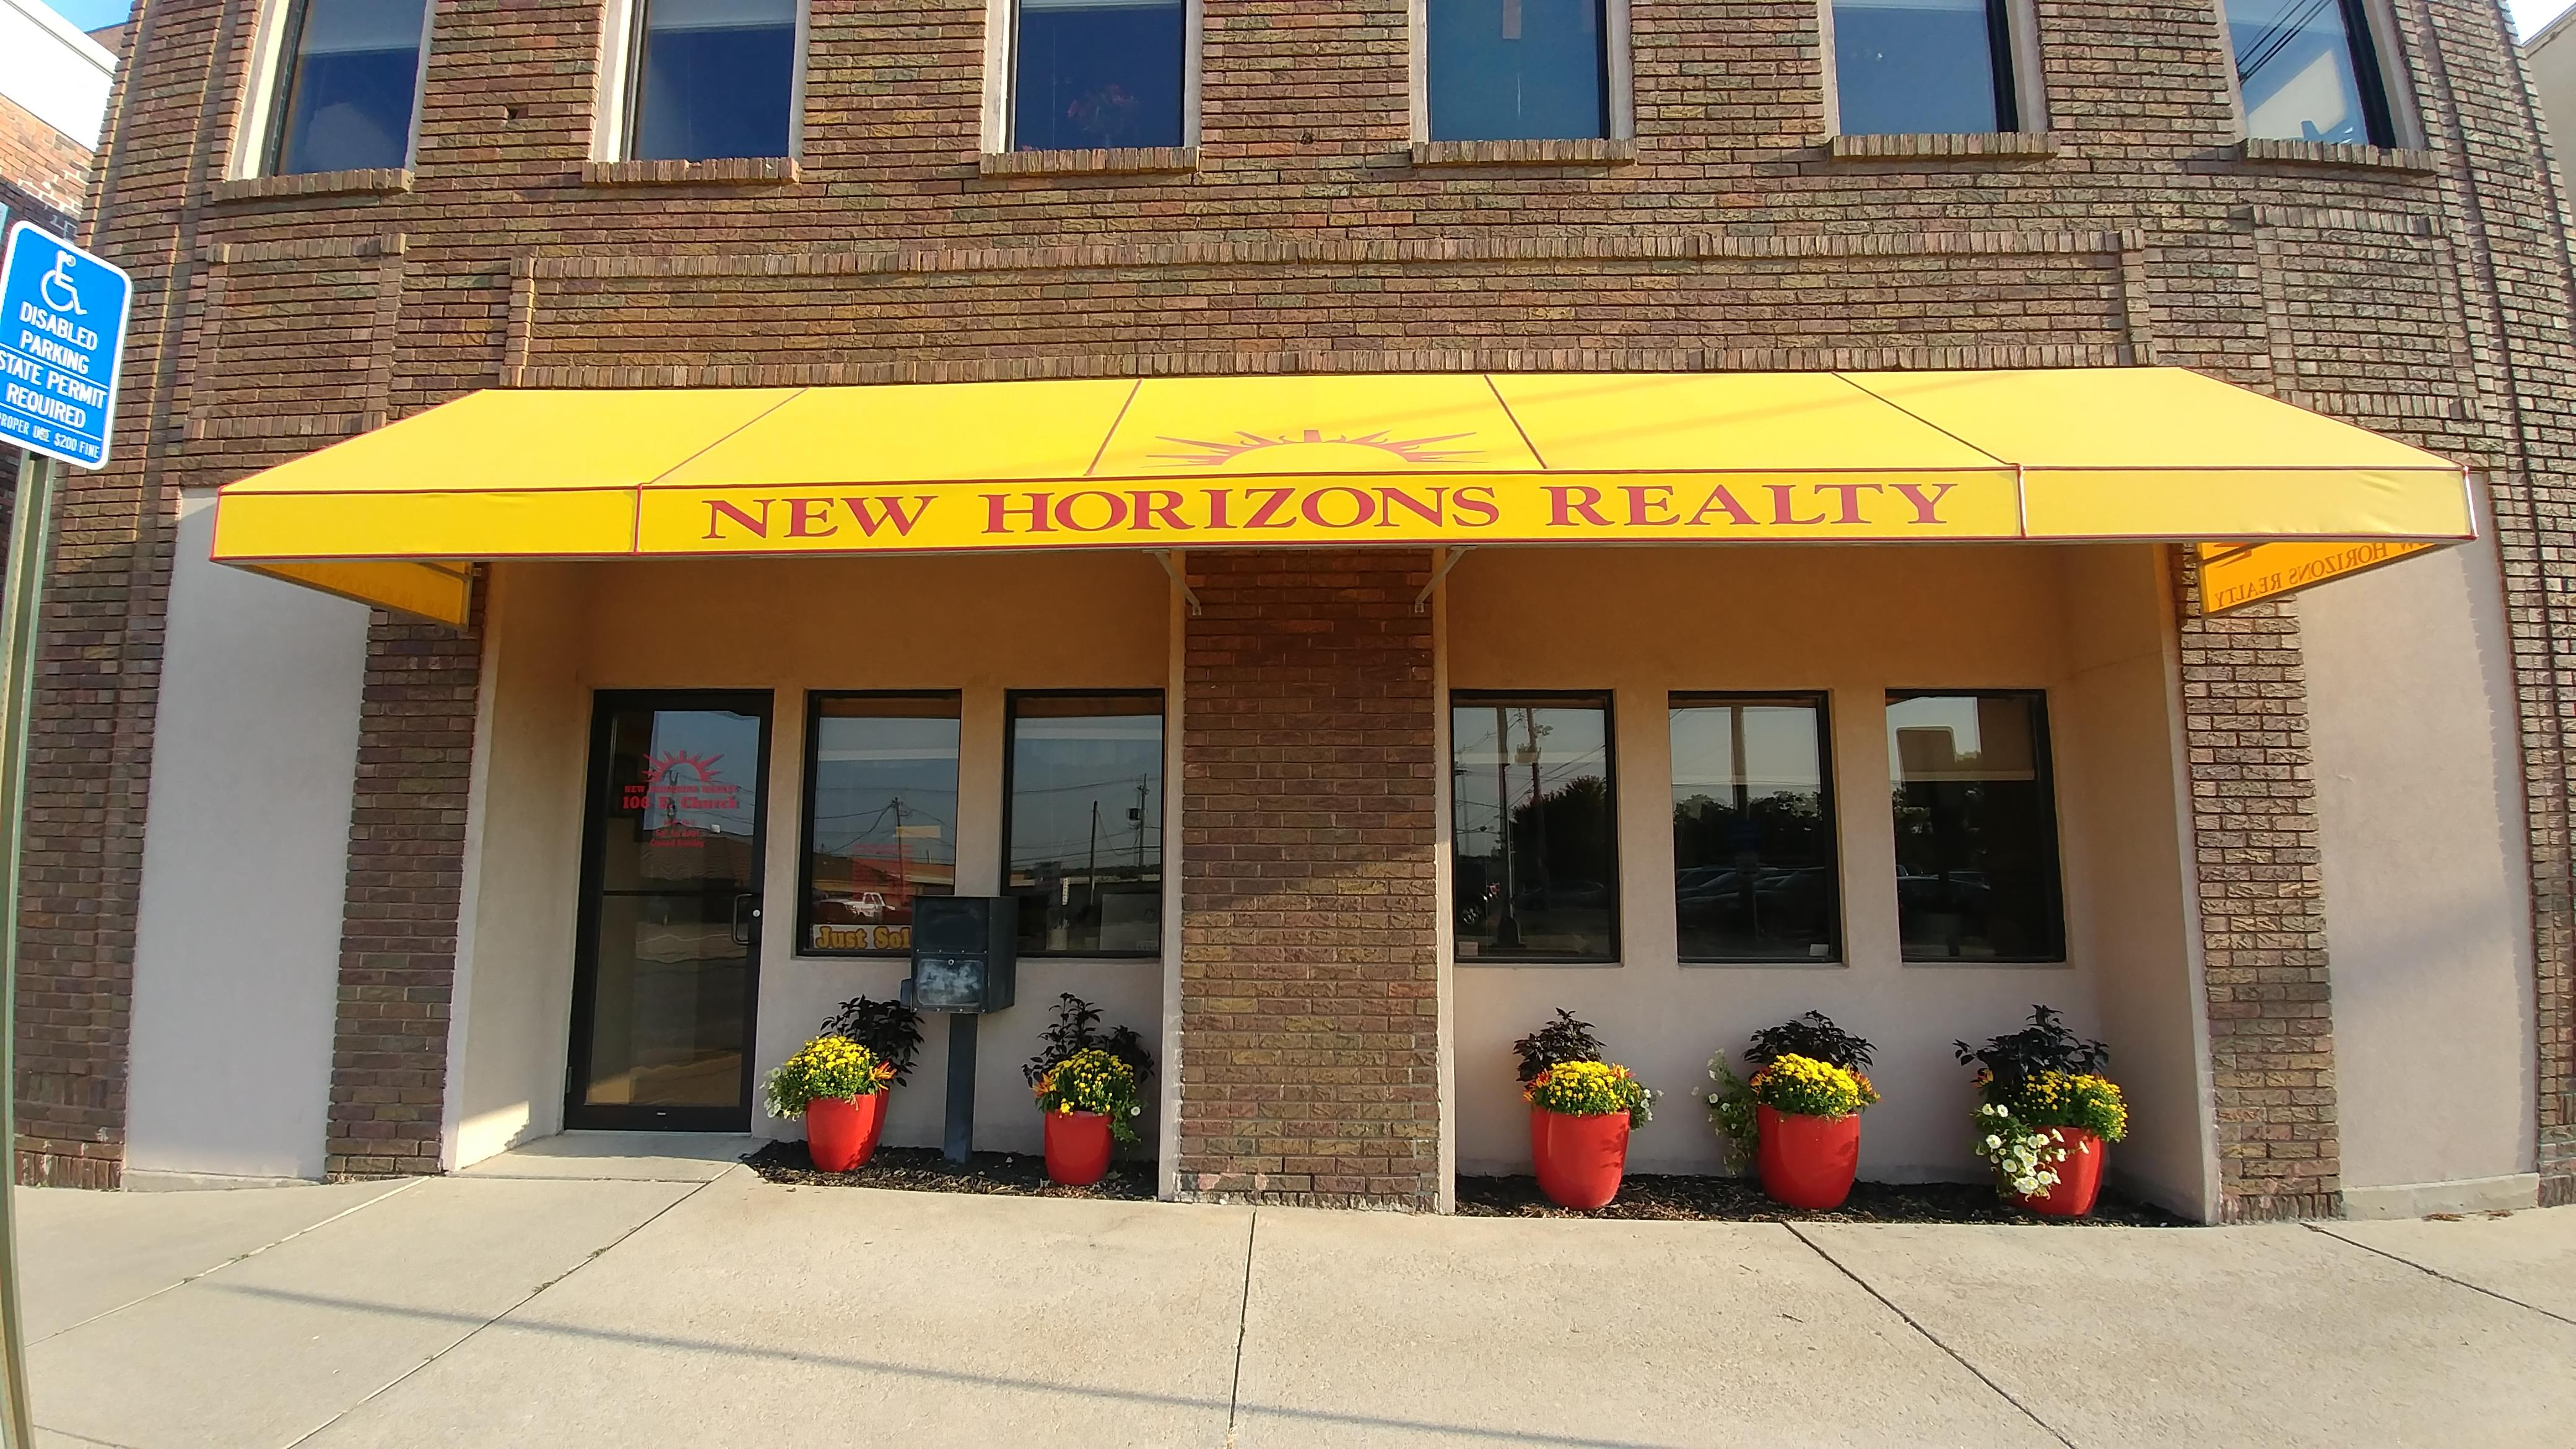 New Horizons Realty